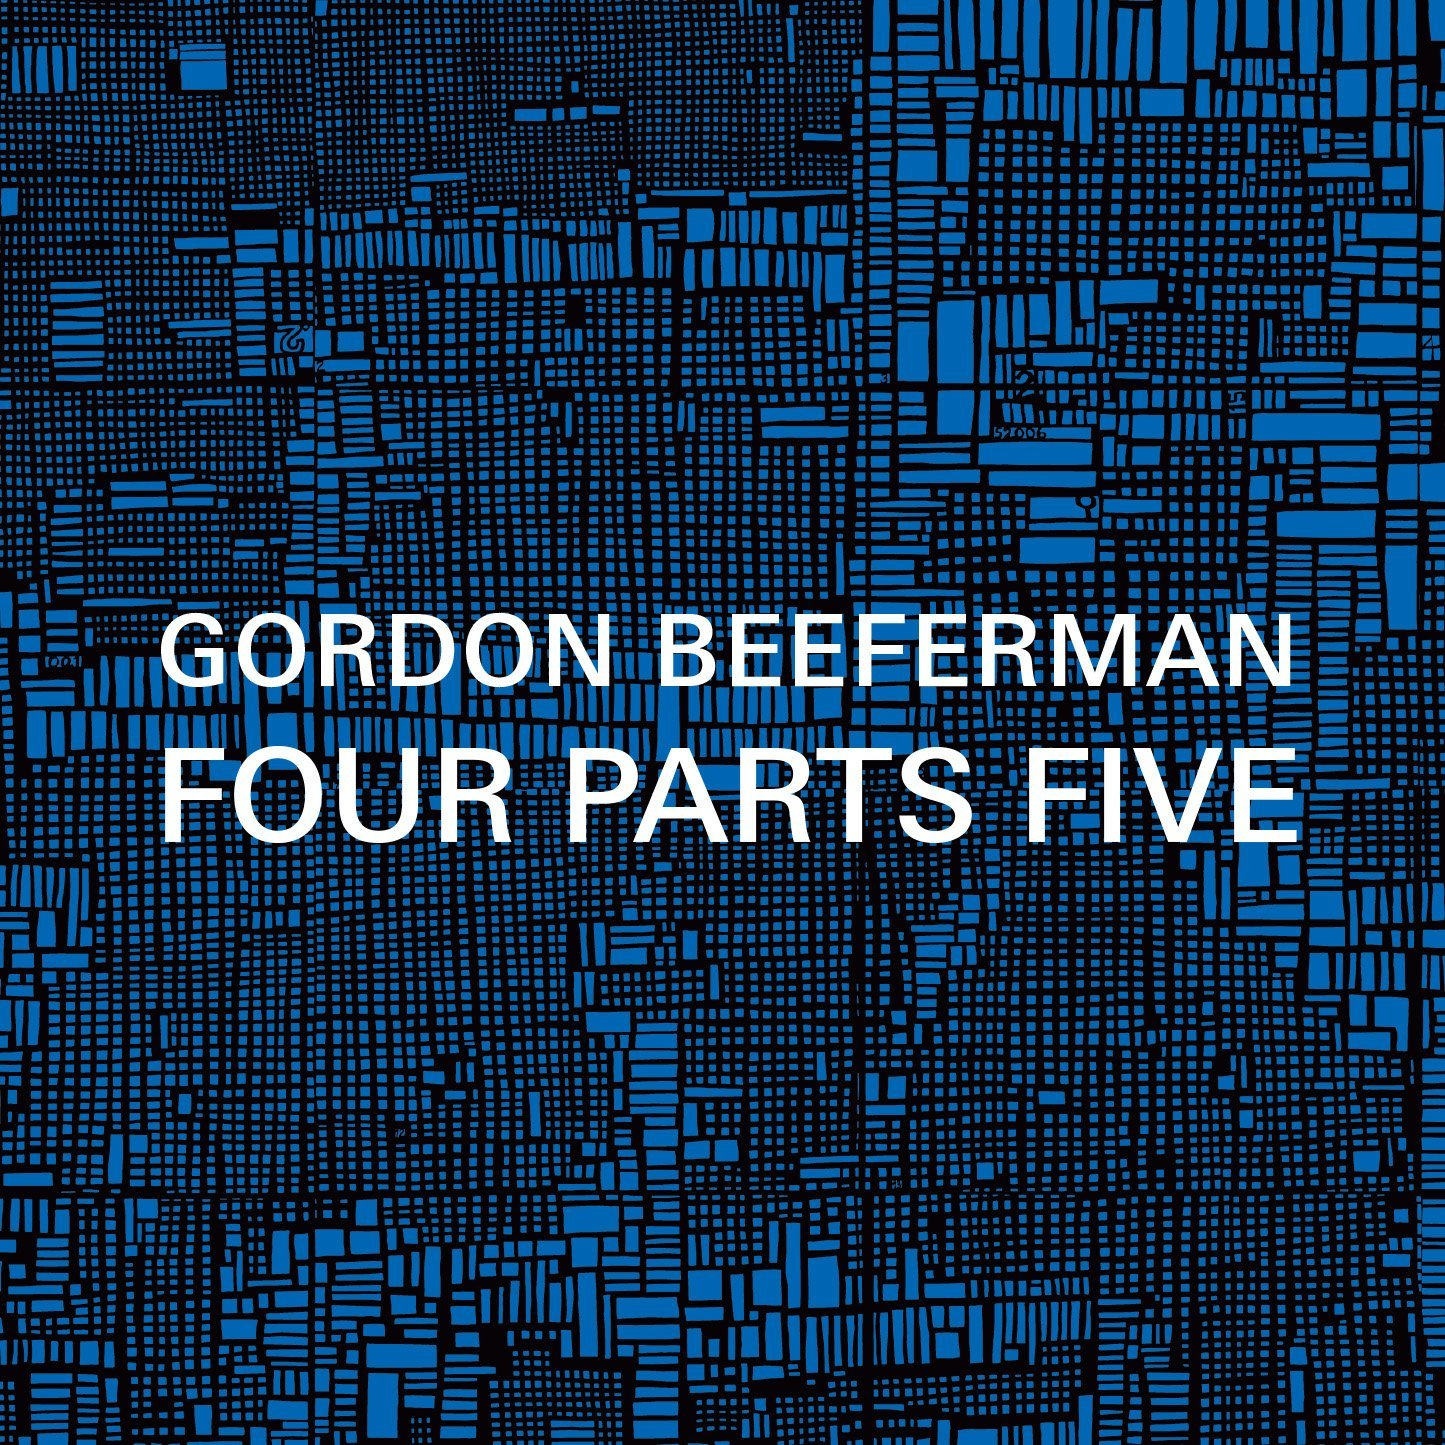 Gordon Beeferman — Four Parts Five